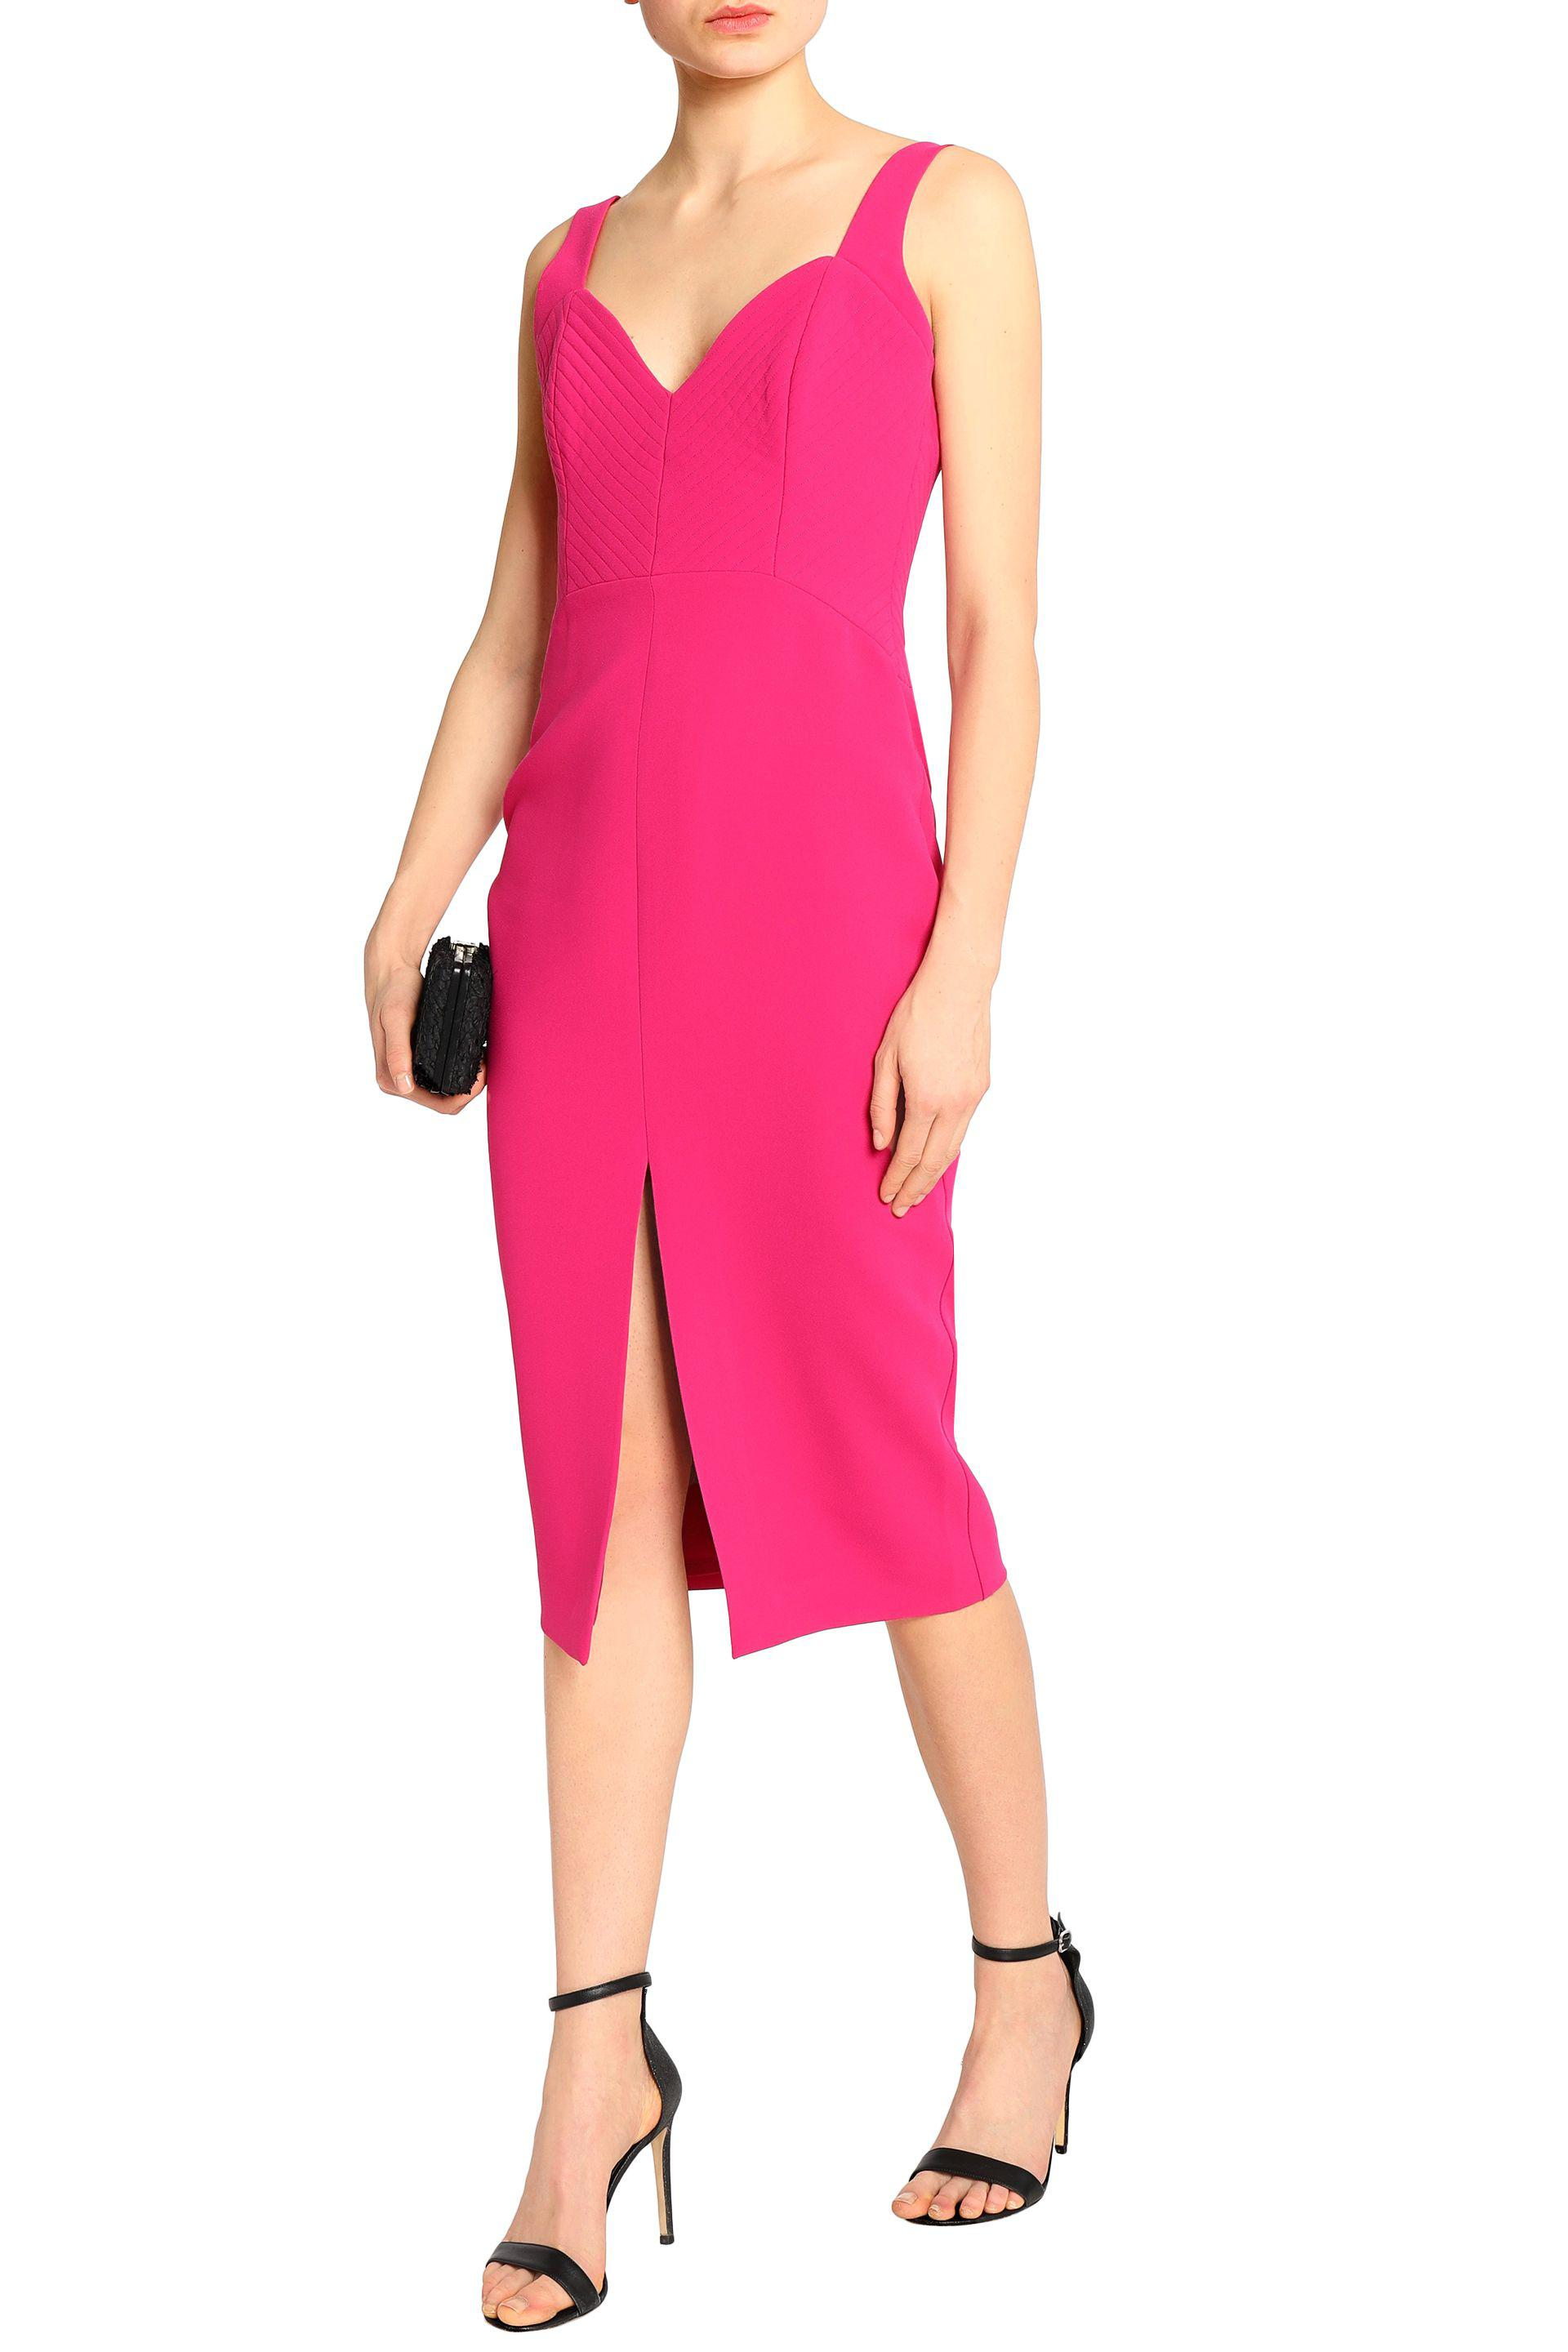 Nicholas Woman Split-front Quilted Crepe Midi Dress Fuchsia Size 4 Nicholas 2018 Best Buy Cheap With Credit Card fgoULToxzA